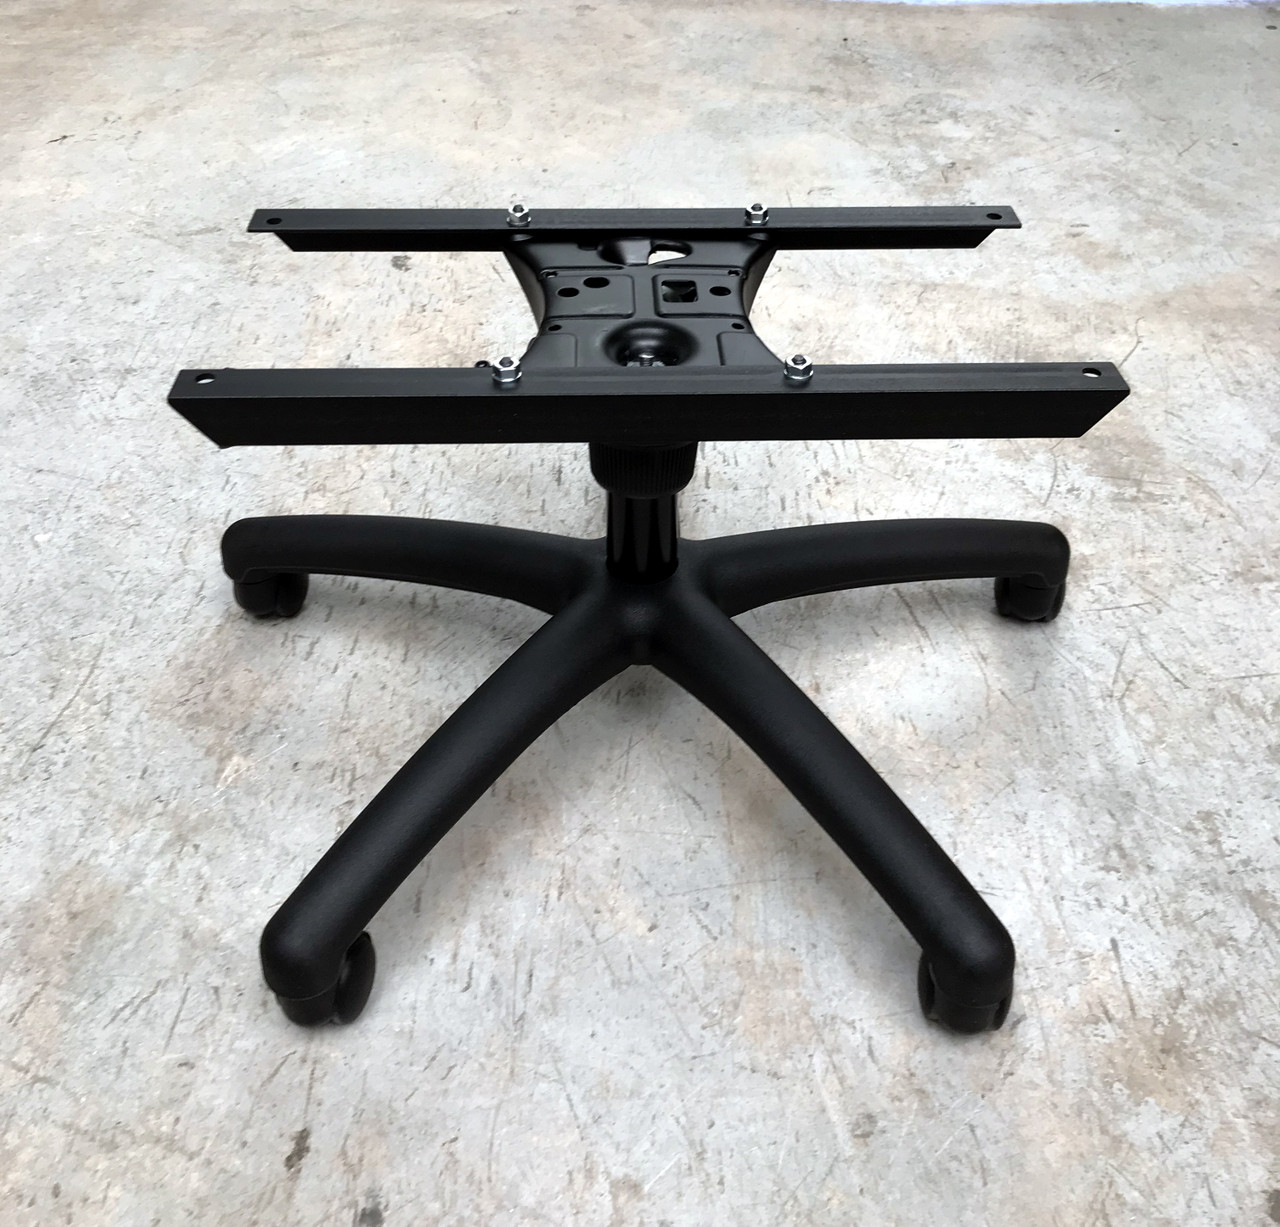 Black replacement under seat assembly